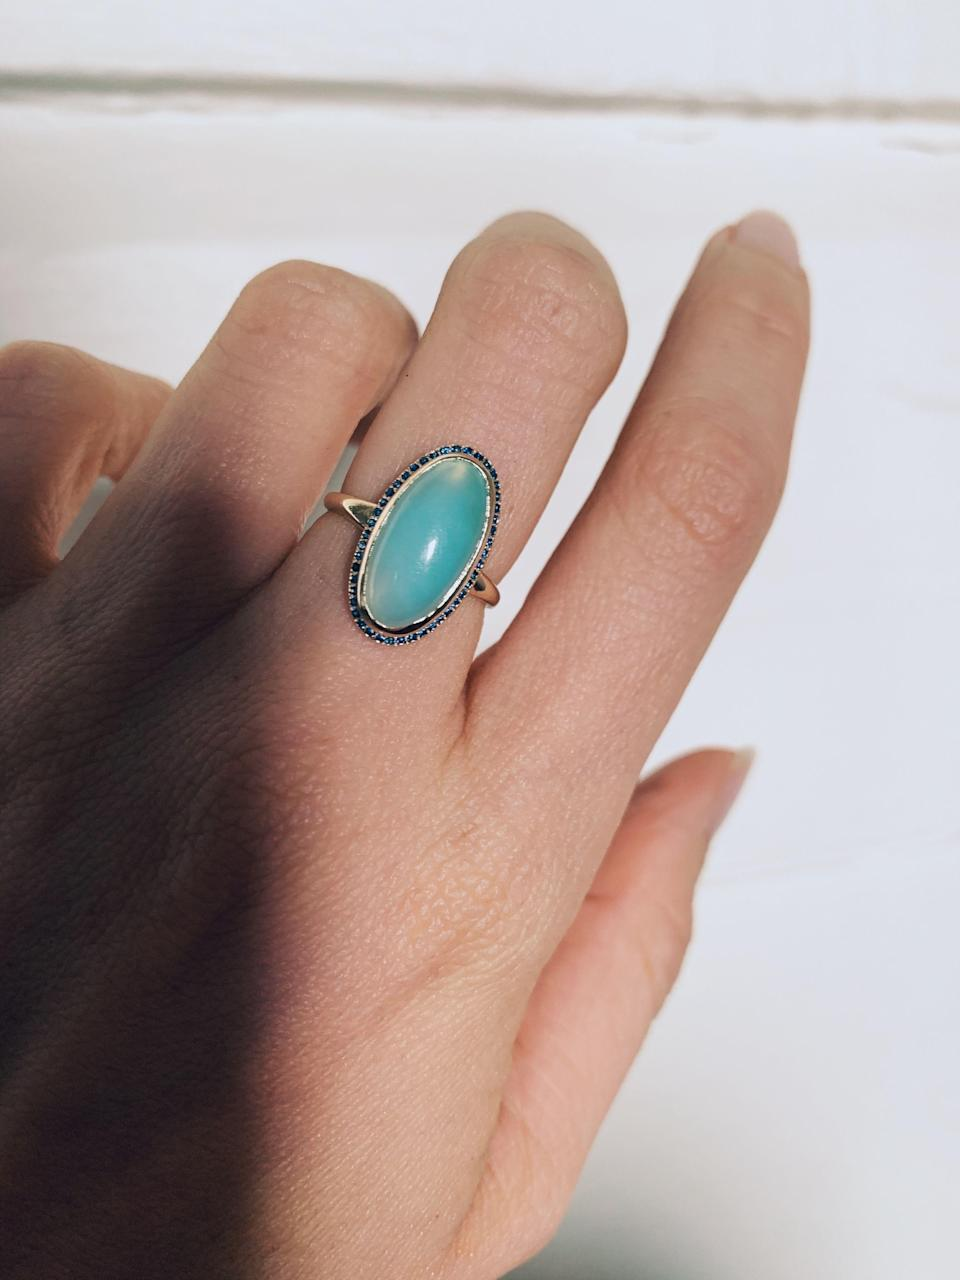 "<p><strong>Olivia Kane</strong></p><p><strong>$2350.00</strong></p><p><a href=""https://www.oliviakane.co/rings/peruvian-opal-ellipse-ring"" rel=""nofollow noopener"" target=""_blank"" data-ylk=""slk:Shop Now"" class=""link rapid-noclick-resp"">Shop Now</a></p><p>Nothing says luxury like a one-of-a-kind ring featuring a 9.6-carat Peruvian blue opal and 45 blue sapphires.</p>"